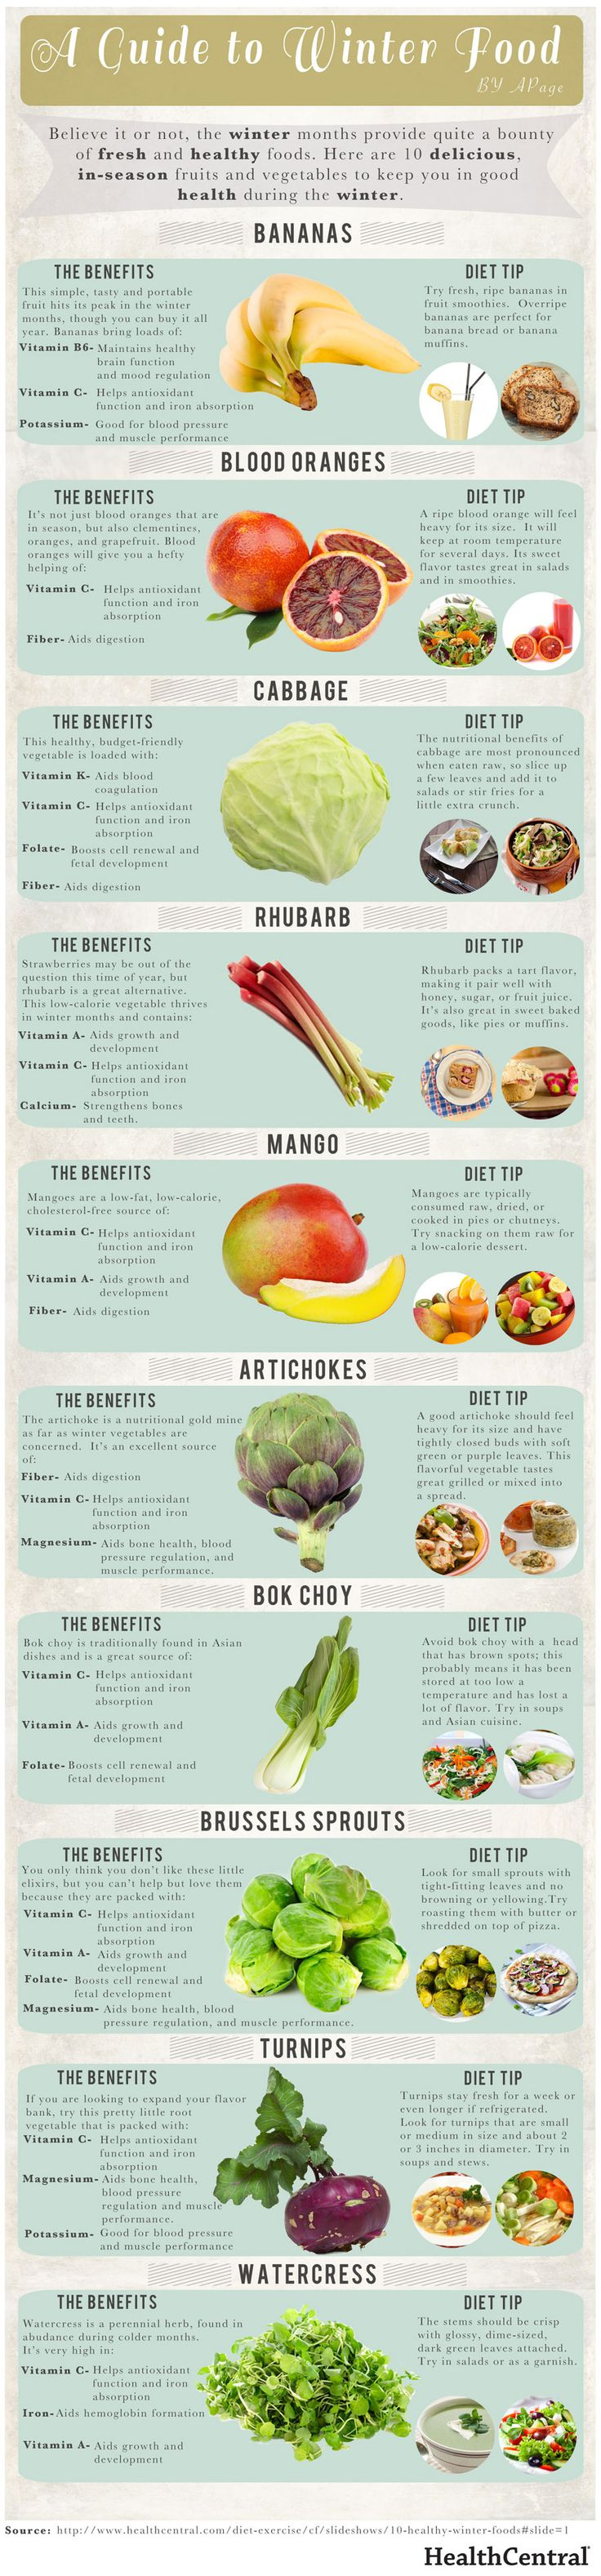 Natural plant based diet: Guide to health benefits of bananas, blood oranges, cabbage, rhubarb, mango, artichokes, bok choy (Chinese cabbage), brussell sprouts, turnips and watercress; and how to incorporate them into your diet. #plantbased #diet